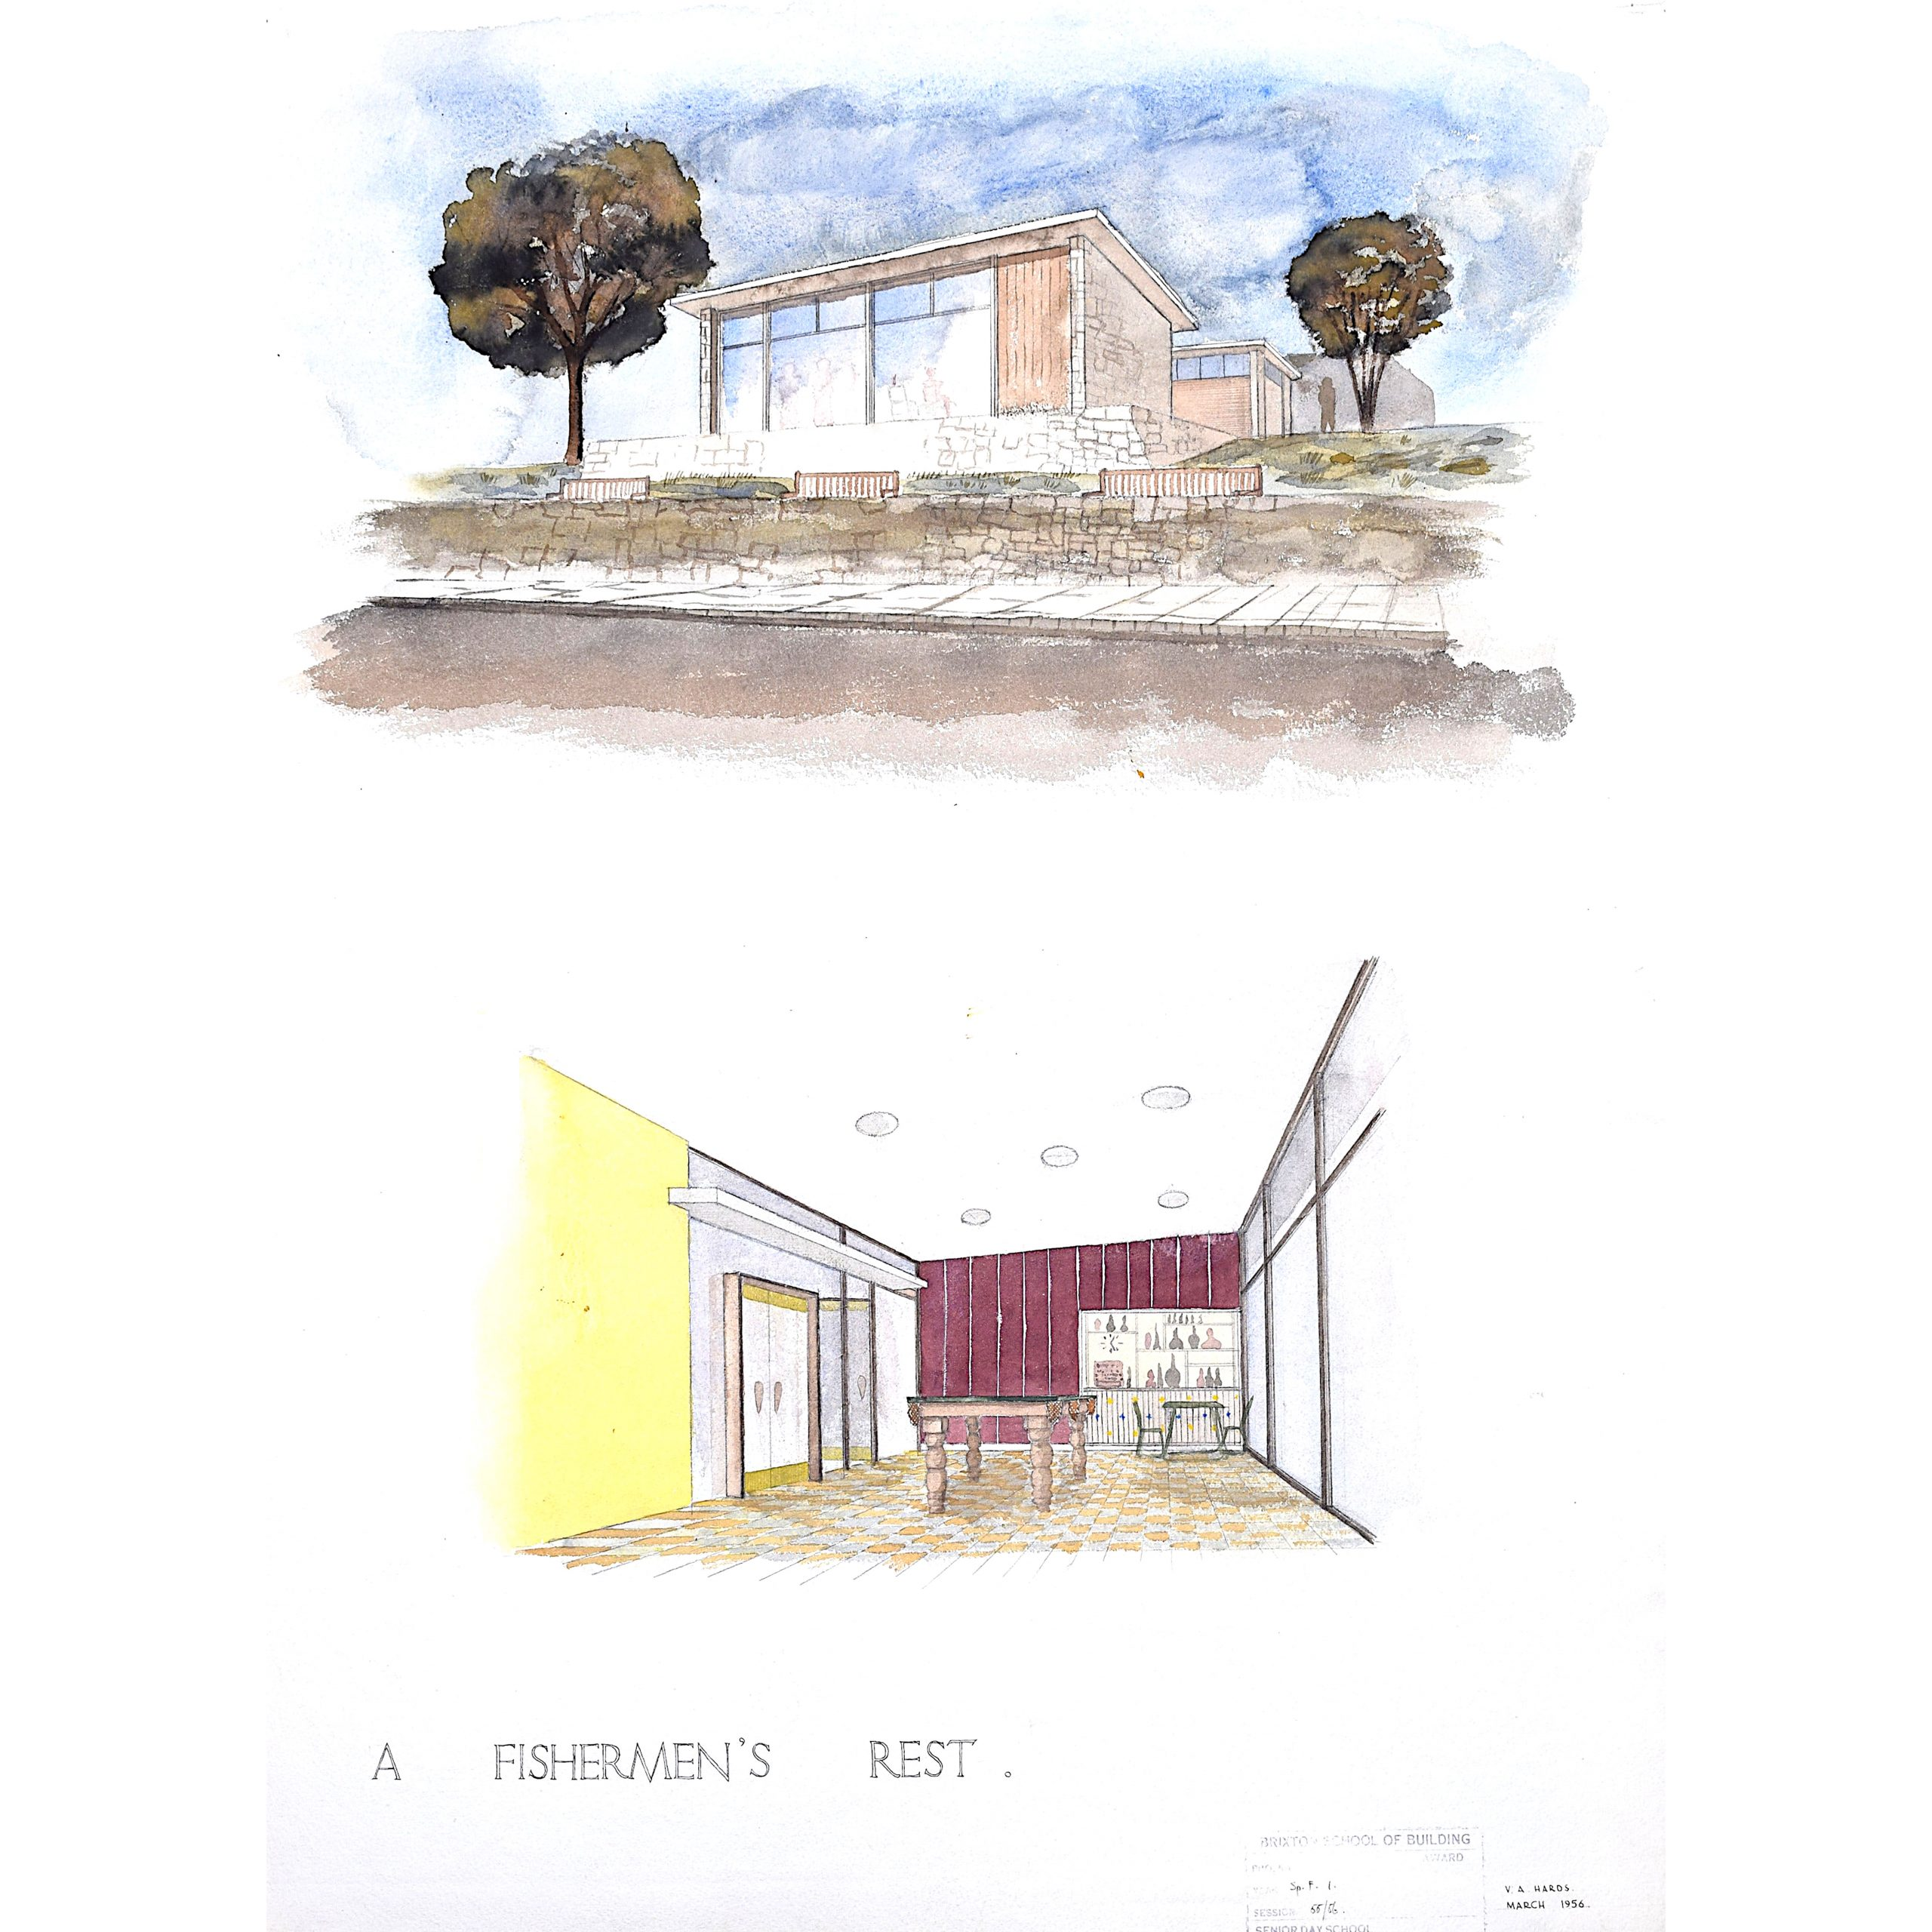 Modernist Fisherman's Hut architectural drawing design